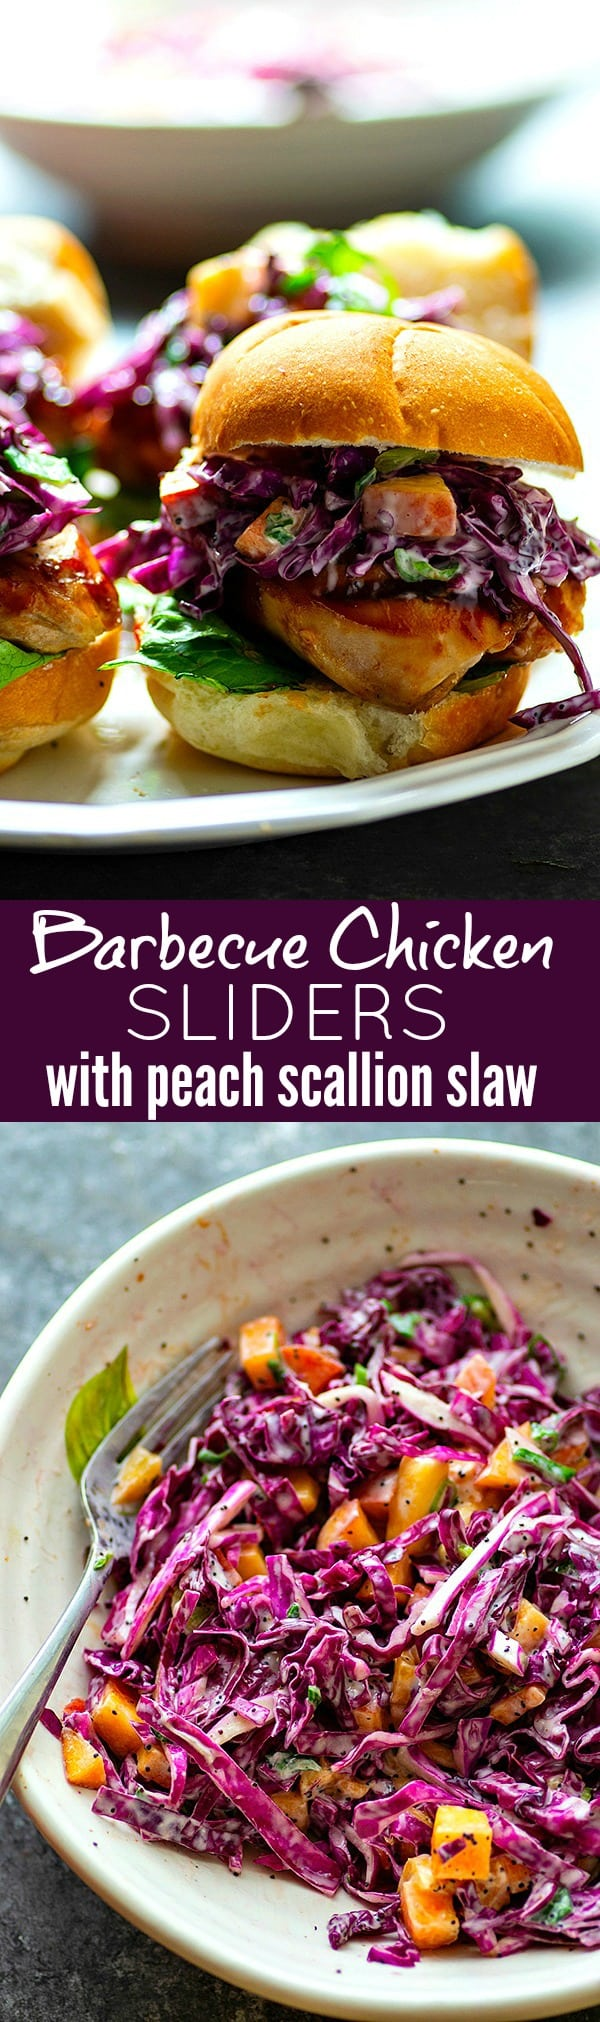 Barbecue Chicken Sliders with Peach Scallion Slaw - Massively flavorful barbecue chicken sliders are piled high with a sweet peach scallion slaw for the ULTIMATELY easy and crowd-pleasing summer appetizer!